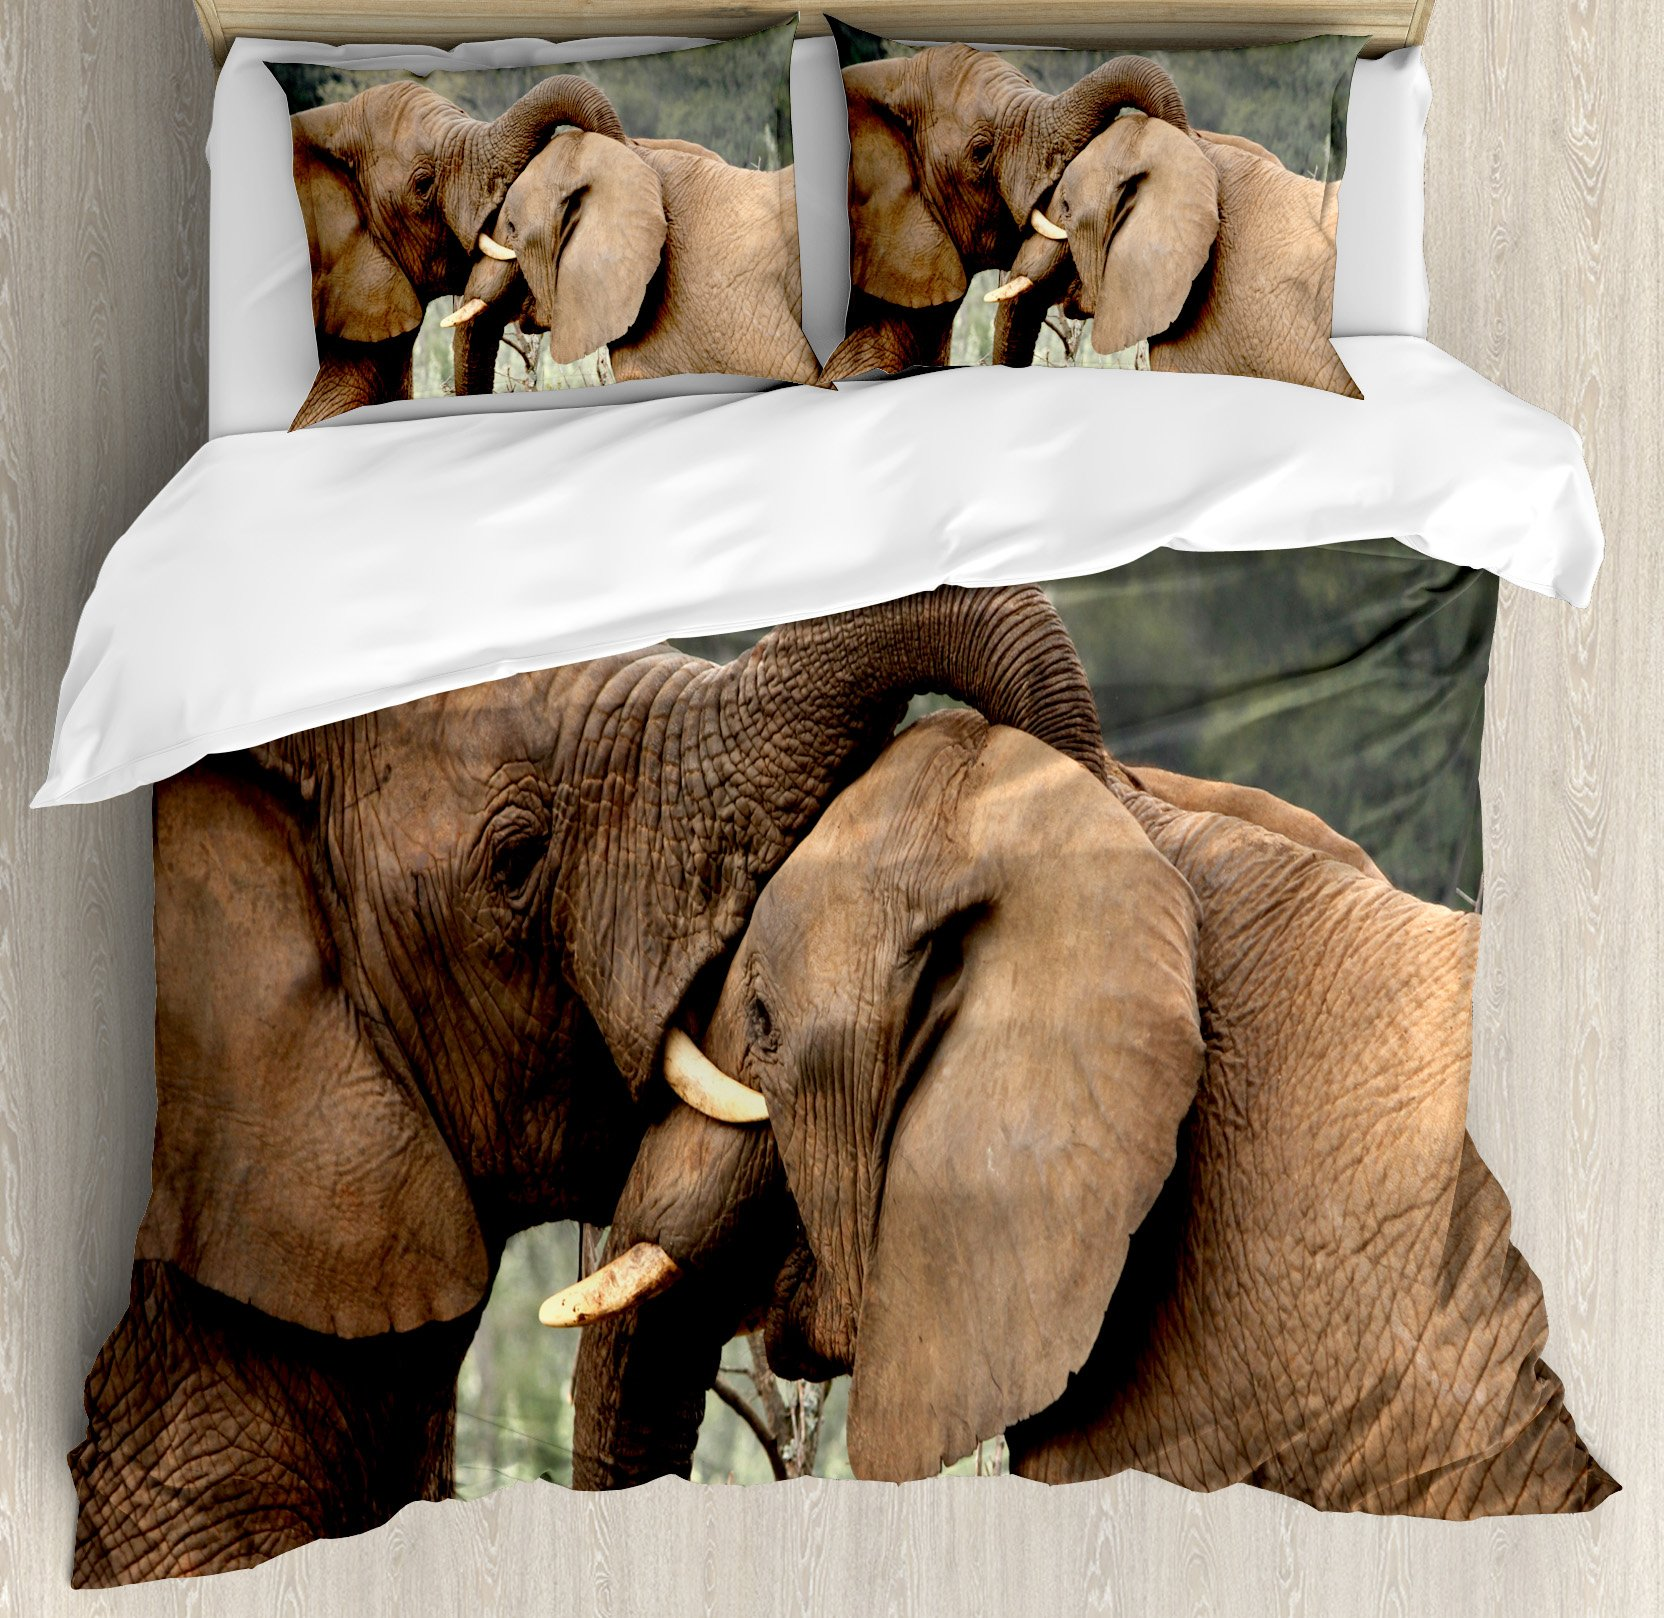 Safari Decor Duvet Cover Set by Ambesonne, Two Wild Savanna Elephants Wrestling Cute Nature Icons South African Animals Game Photo, 3 Piece Bedding Set with Pillow Shams, Queen / Full, Brown Green